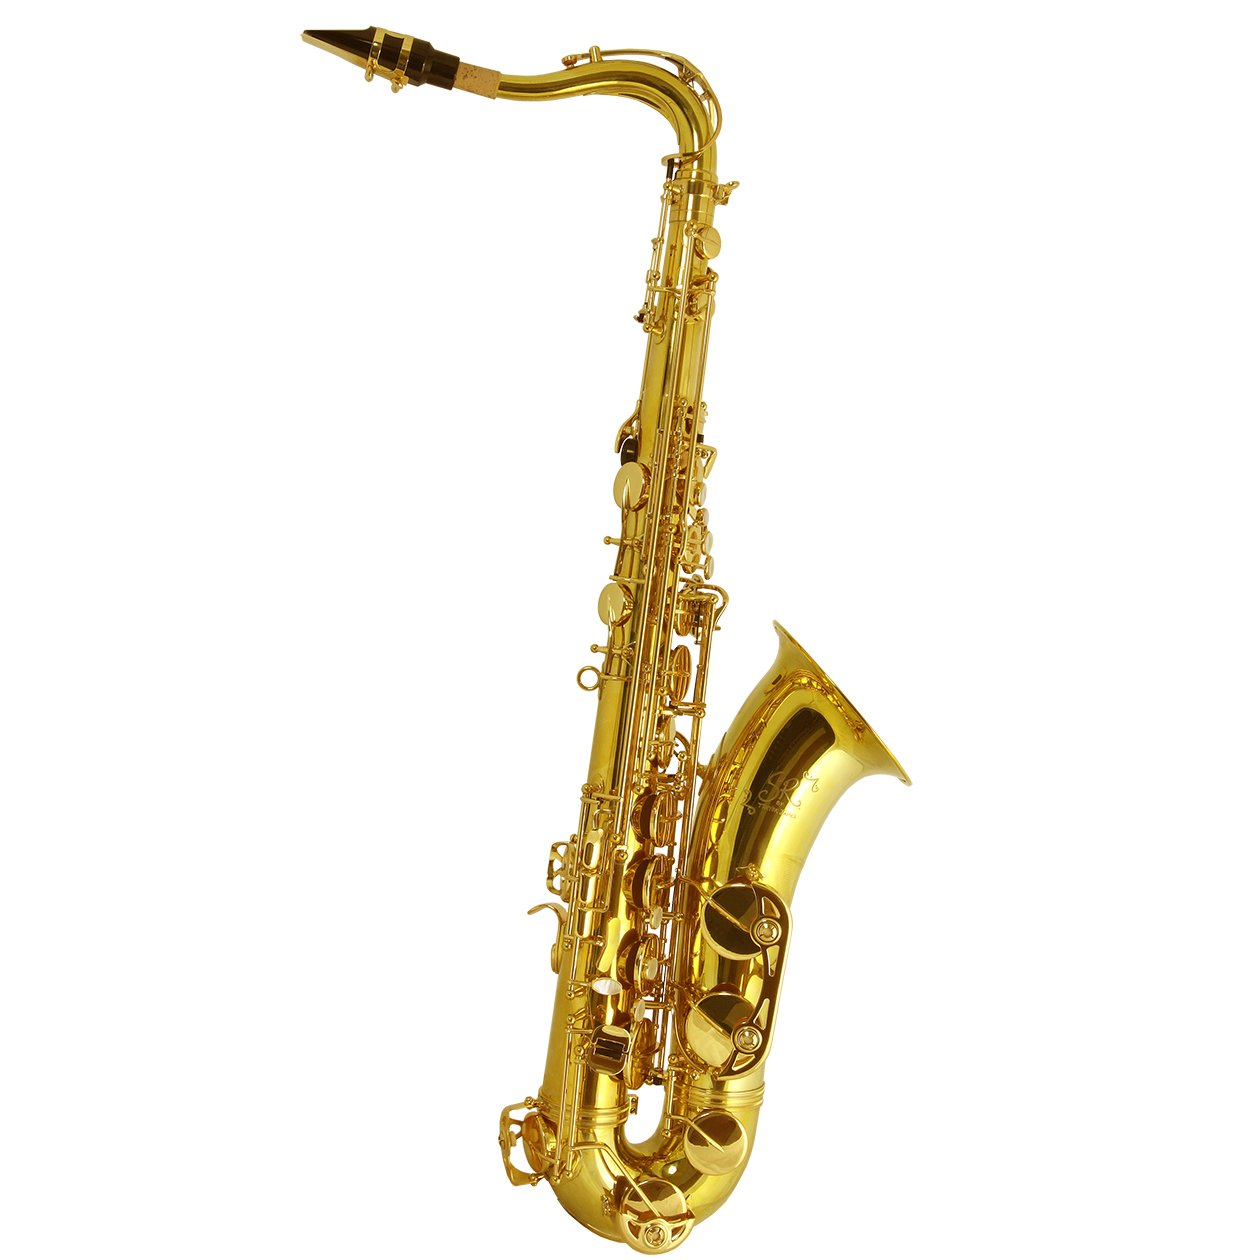 Trevor James - SR Tenor Saxophones-Saxophone-Trevor James-Gold Lacquer-Music Elements